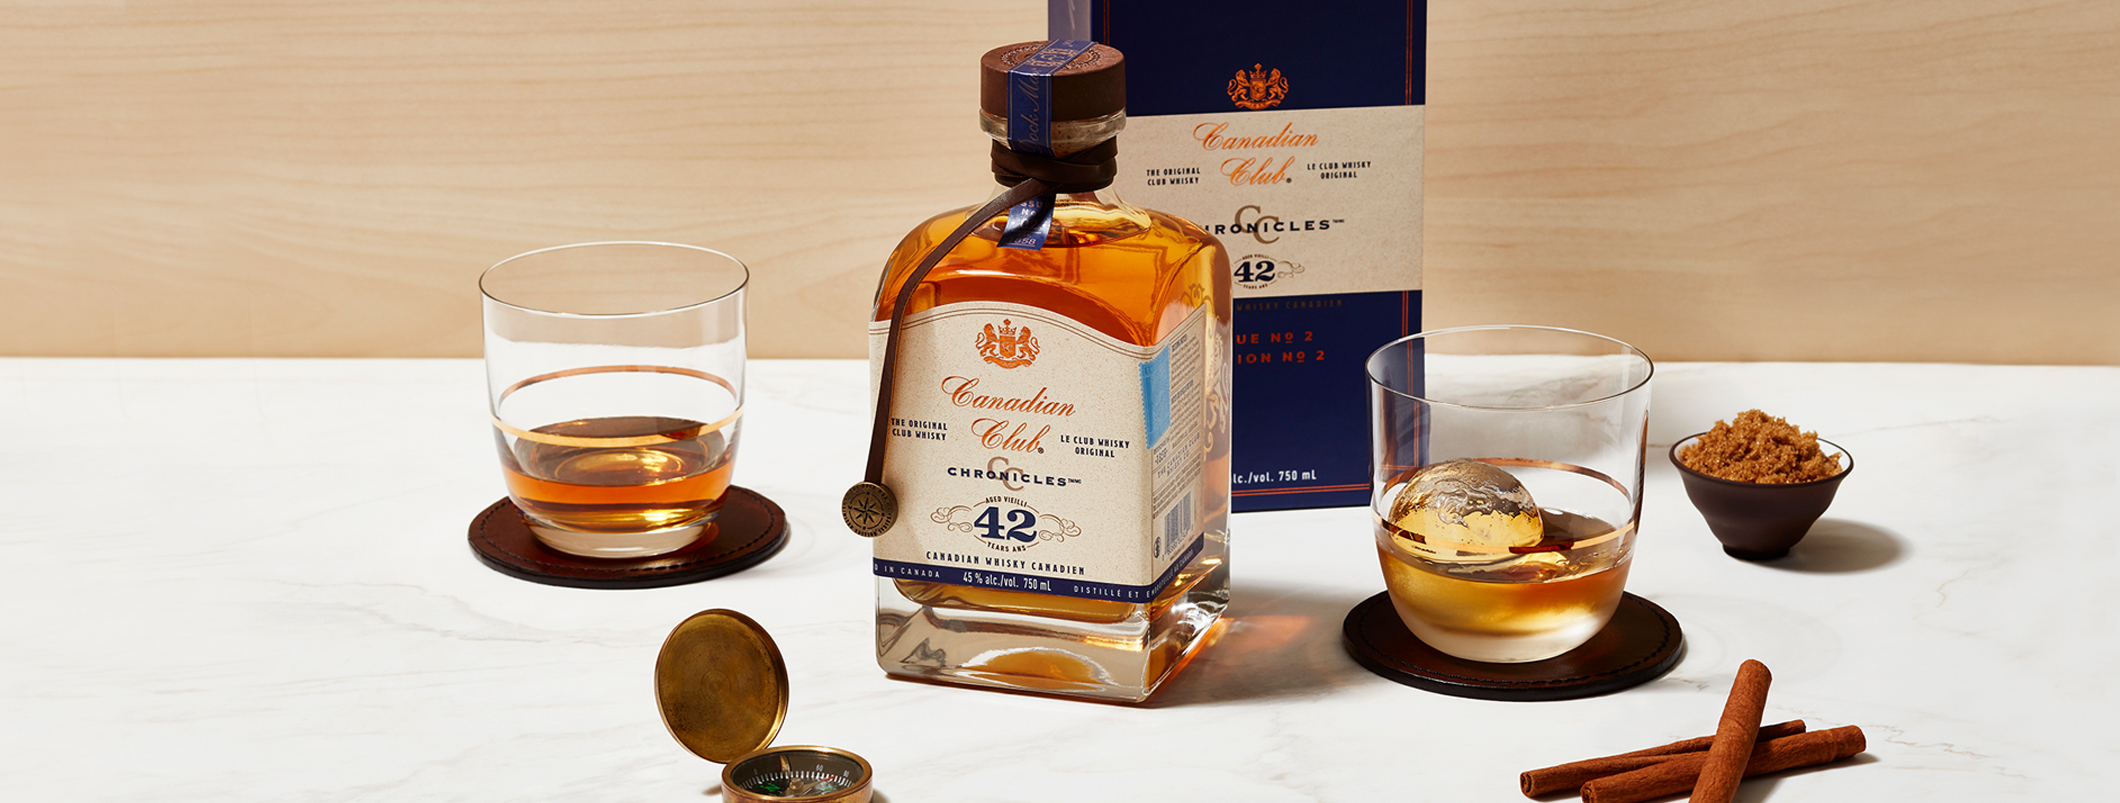 Spotlight On: Canadian Club